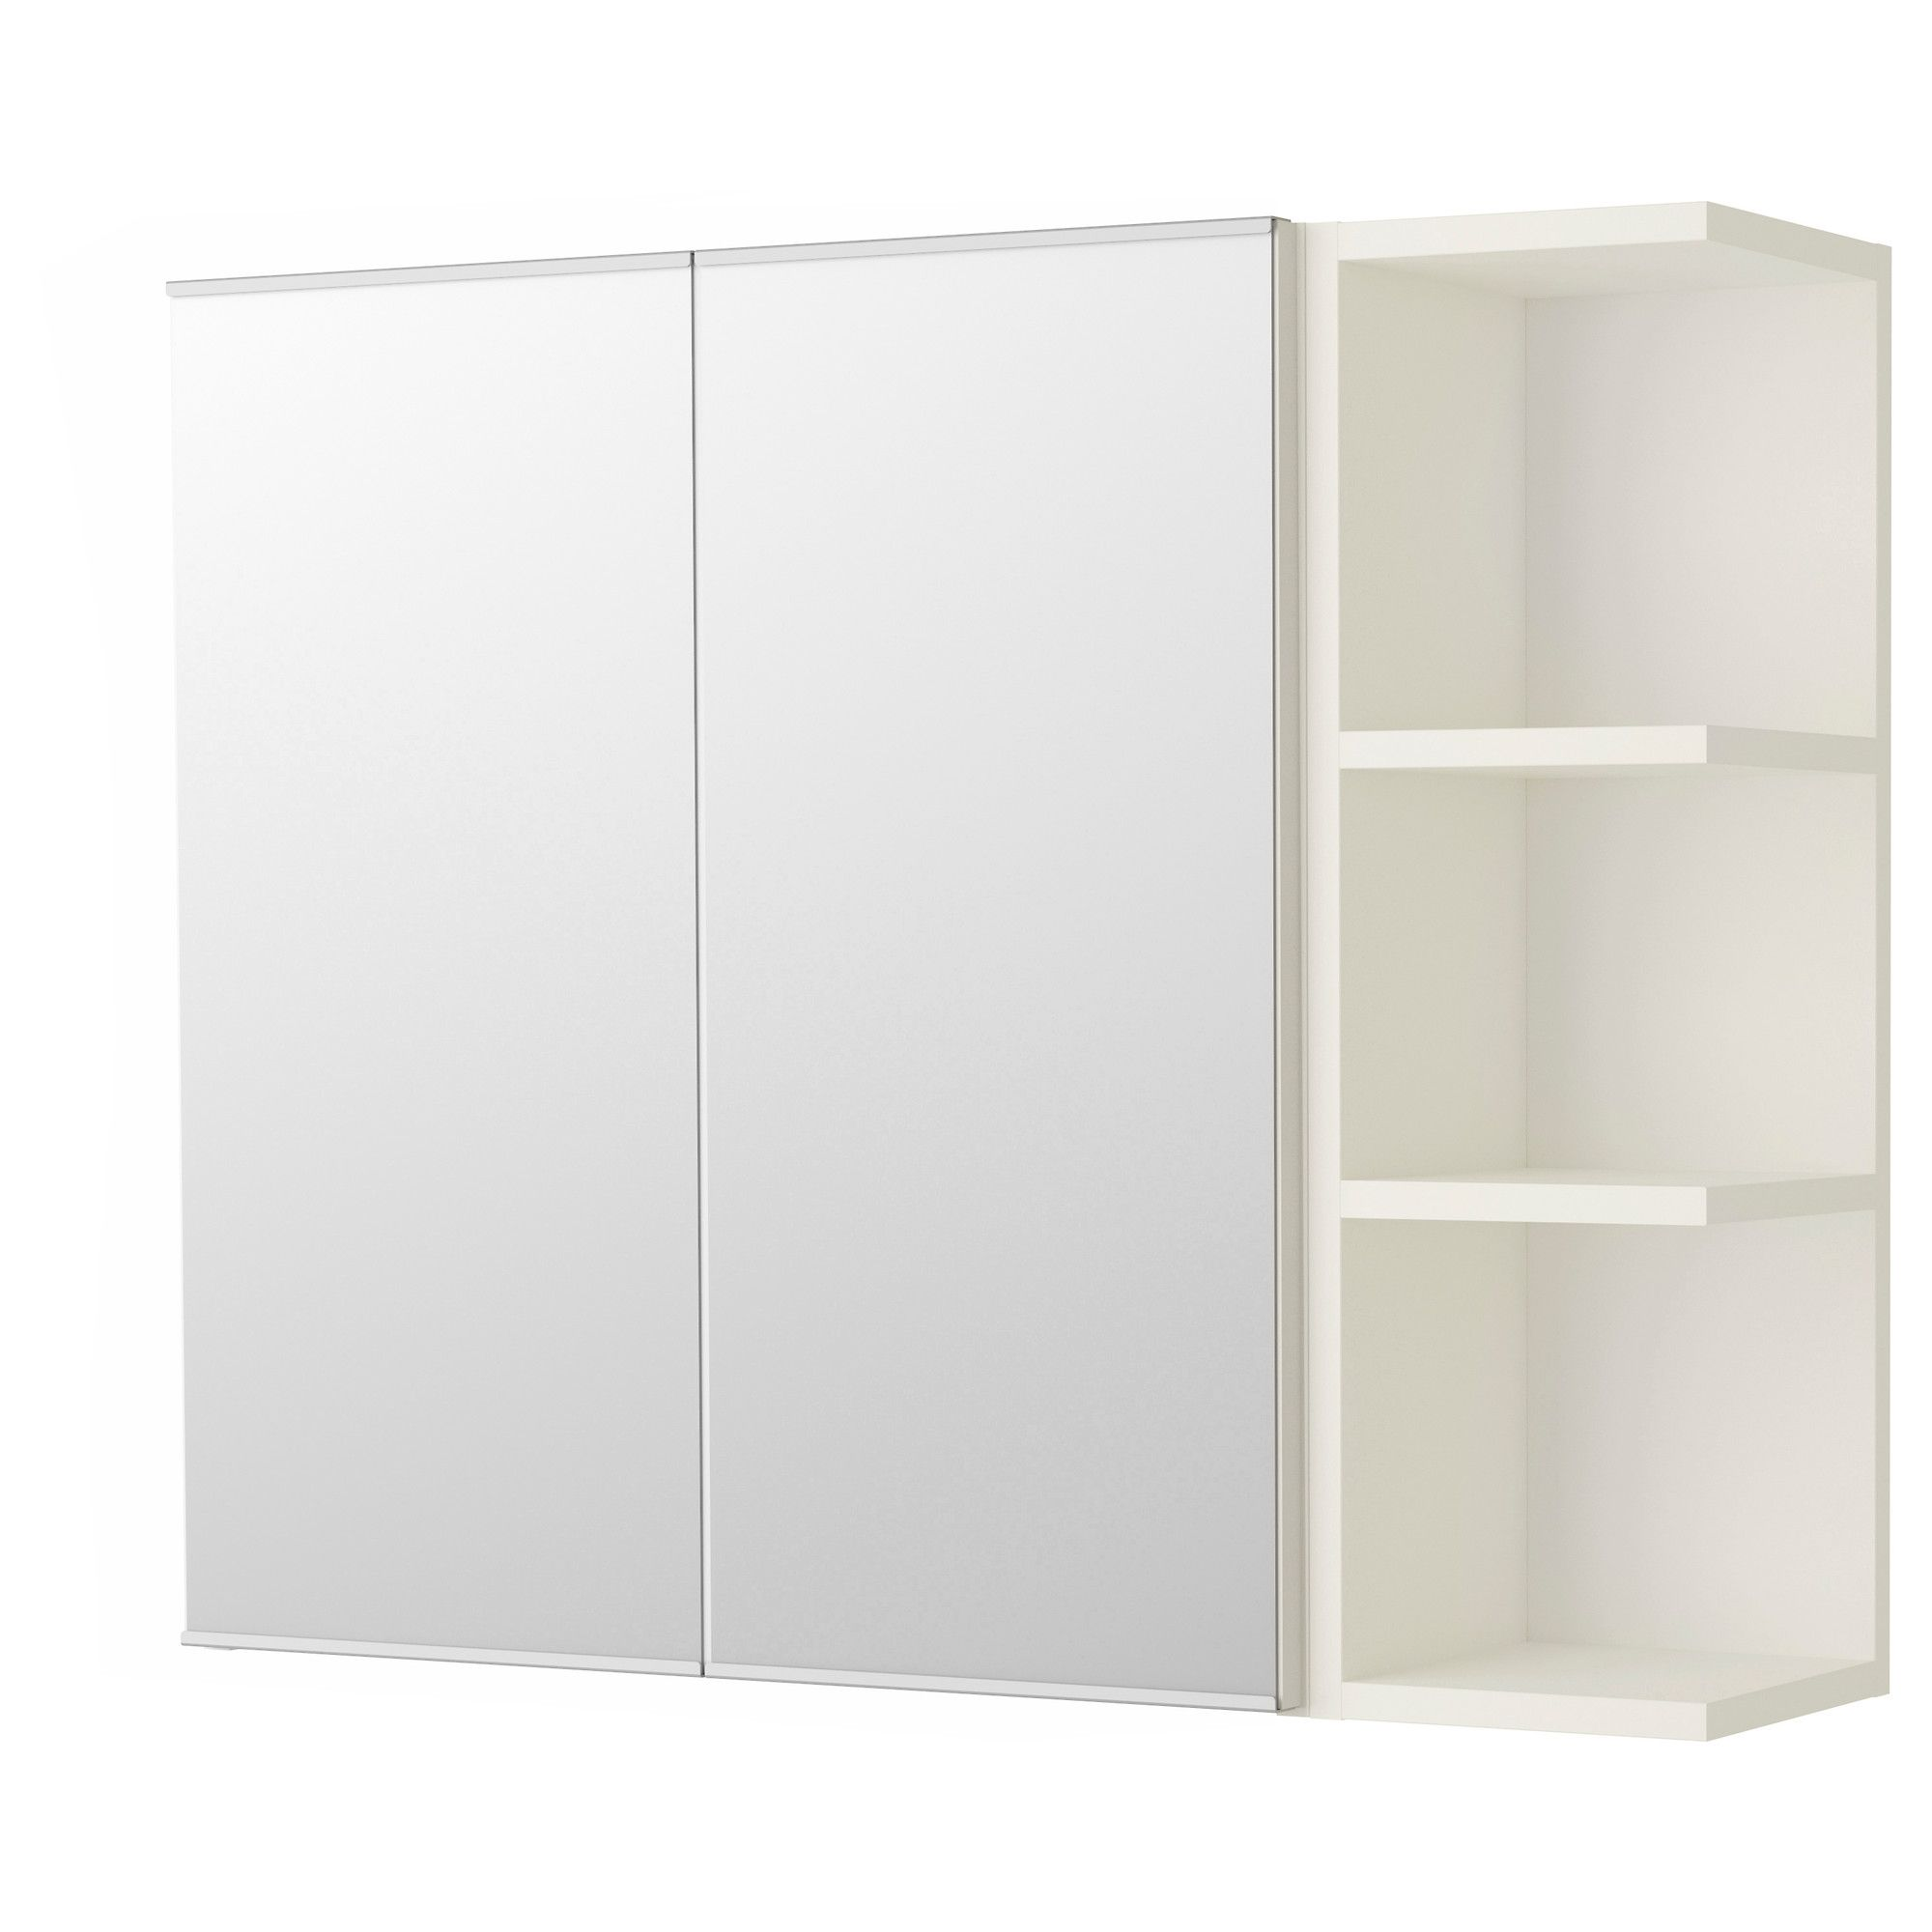 LILLÅNGEN Mirror 2 doors/1 end unit white 31 1